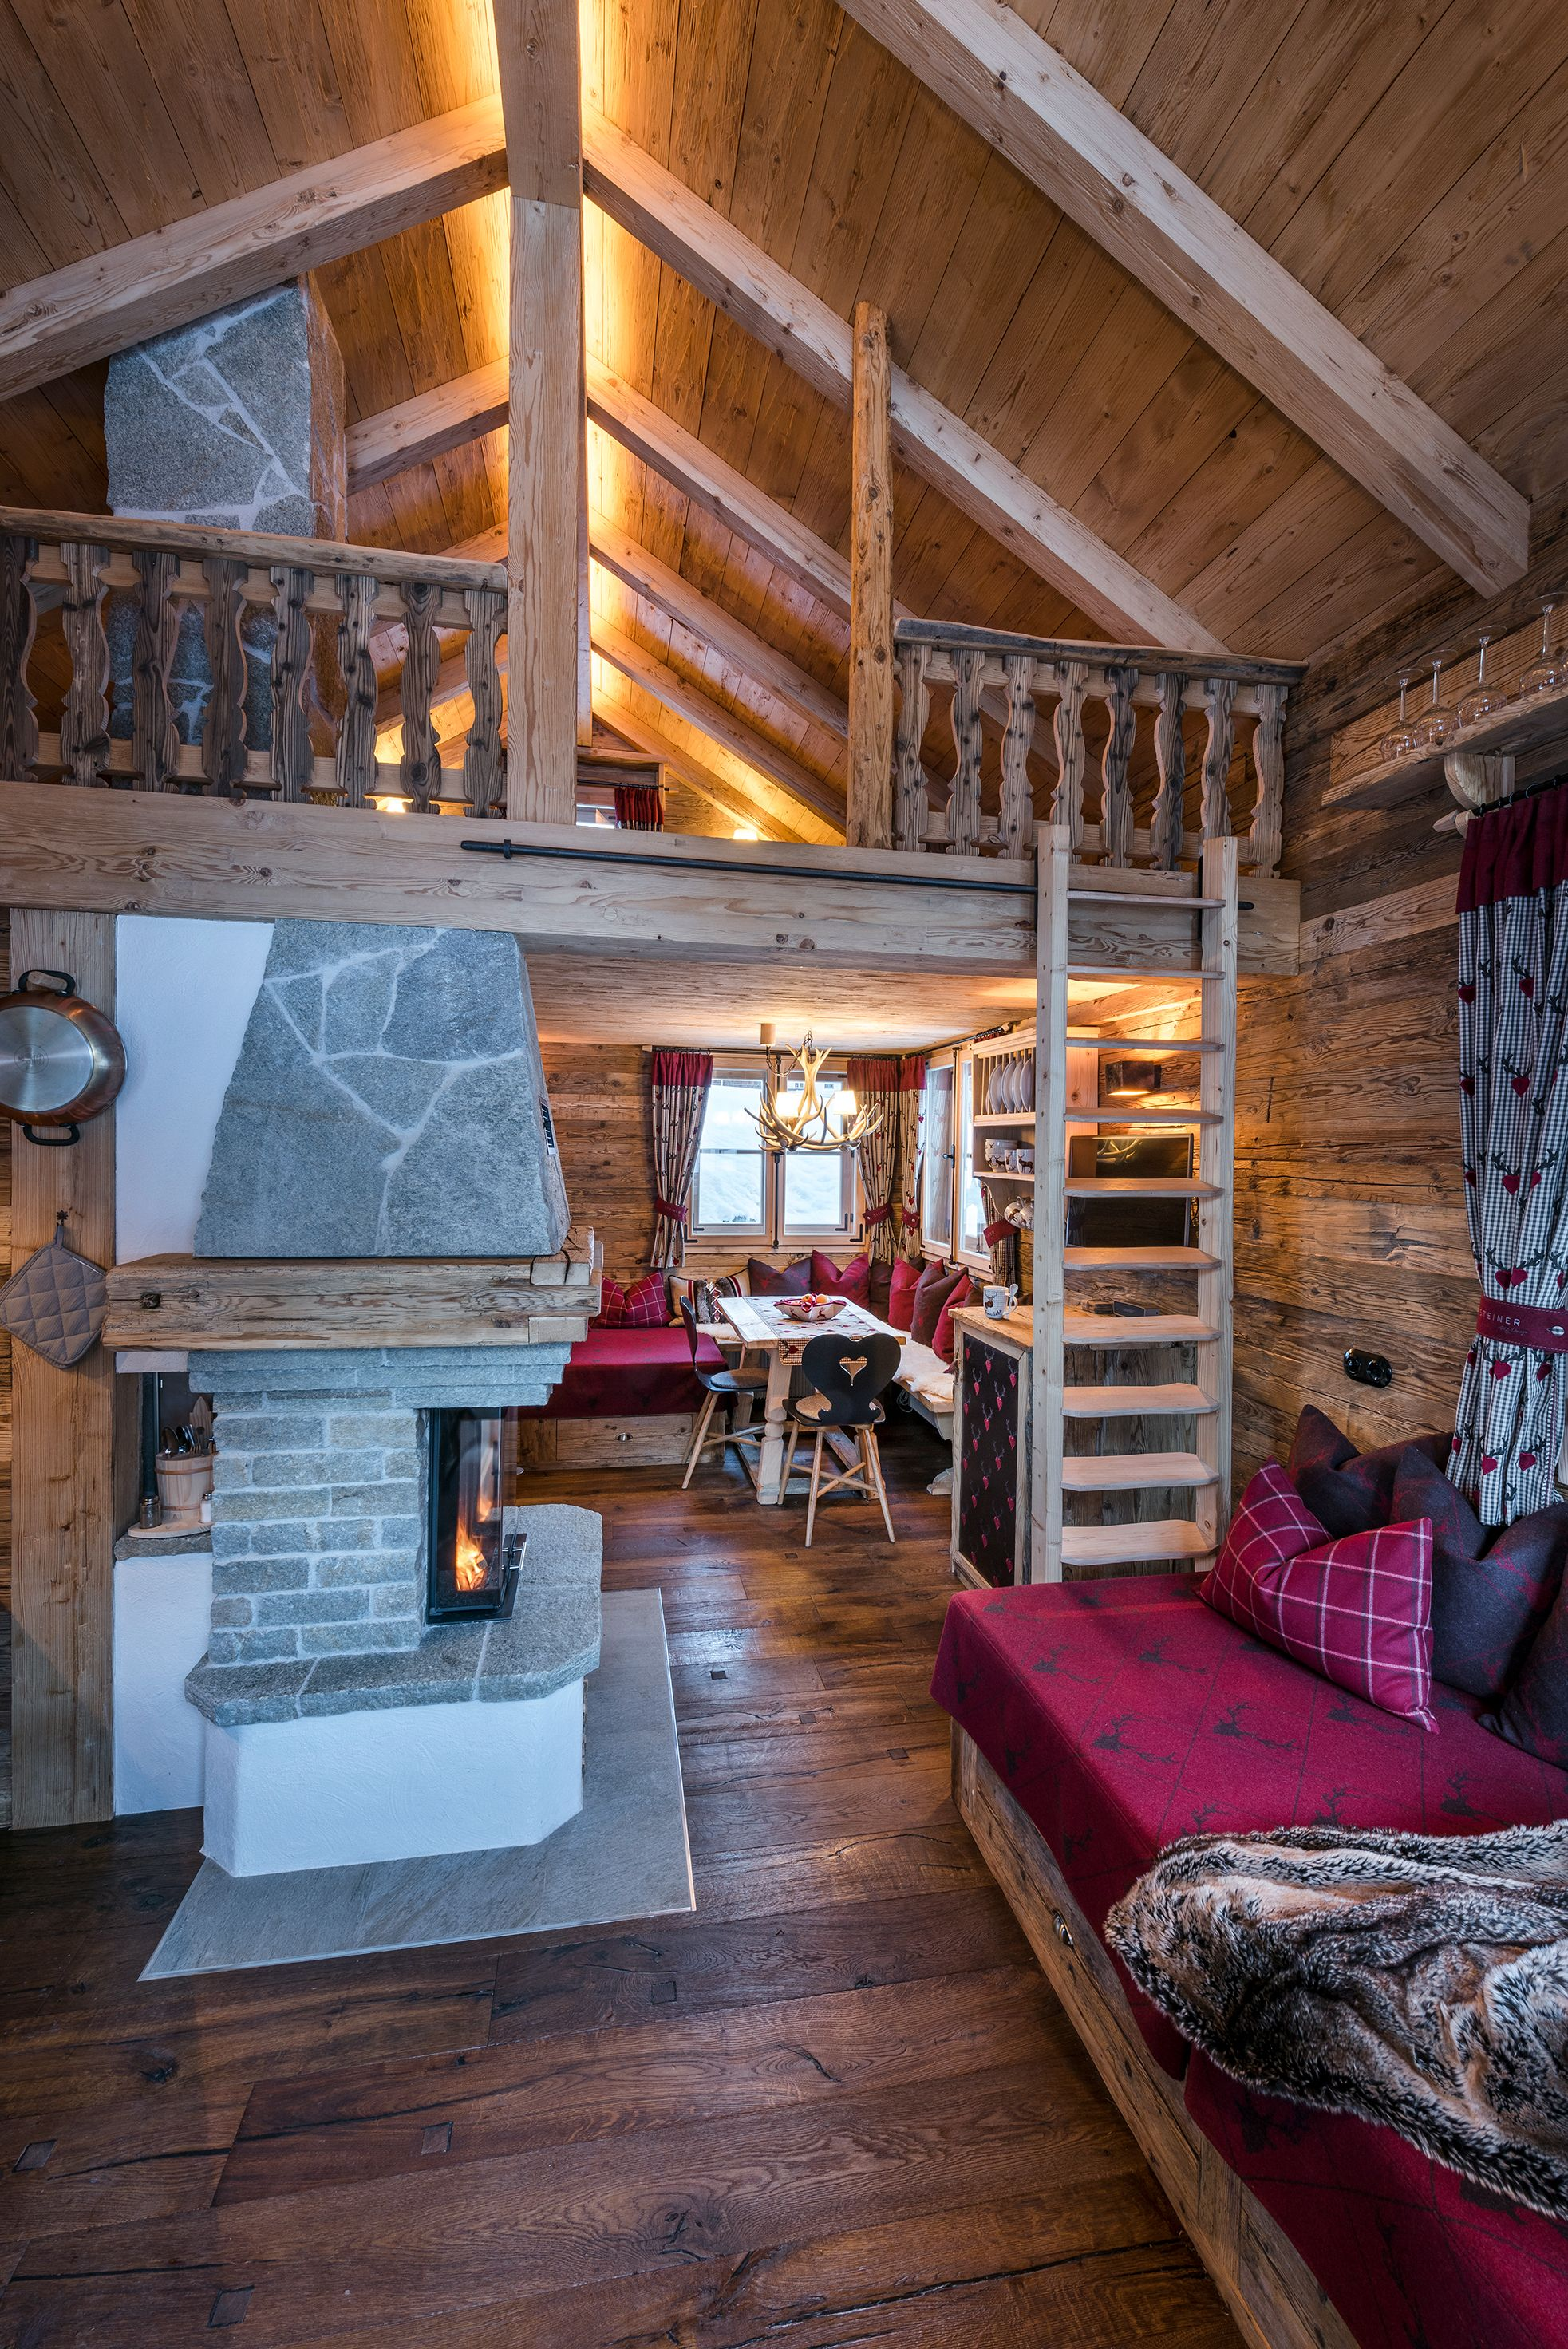 pin by steiner art design on tiny chalet grand fl h pinterest footprint and house. Black Bedroom Furniture Sets. Home Design Ideas